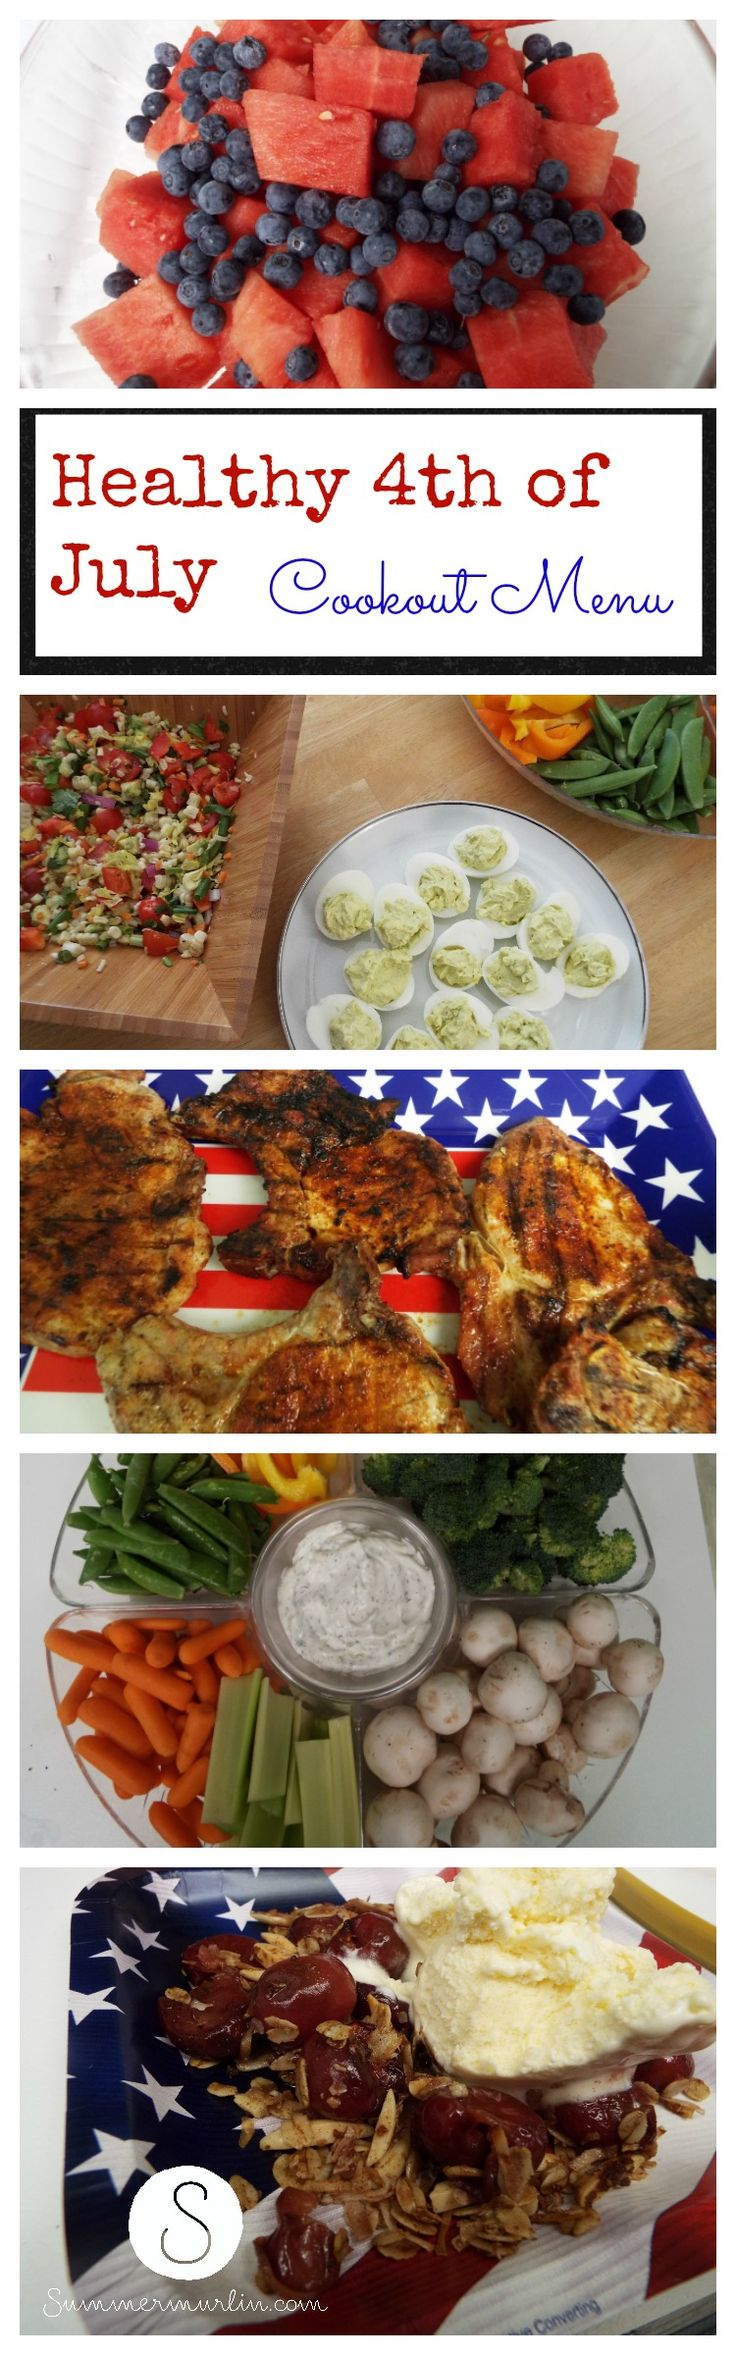 Healthy Fourth of July Cookout Menu !!!